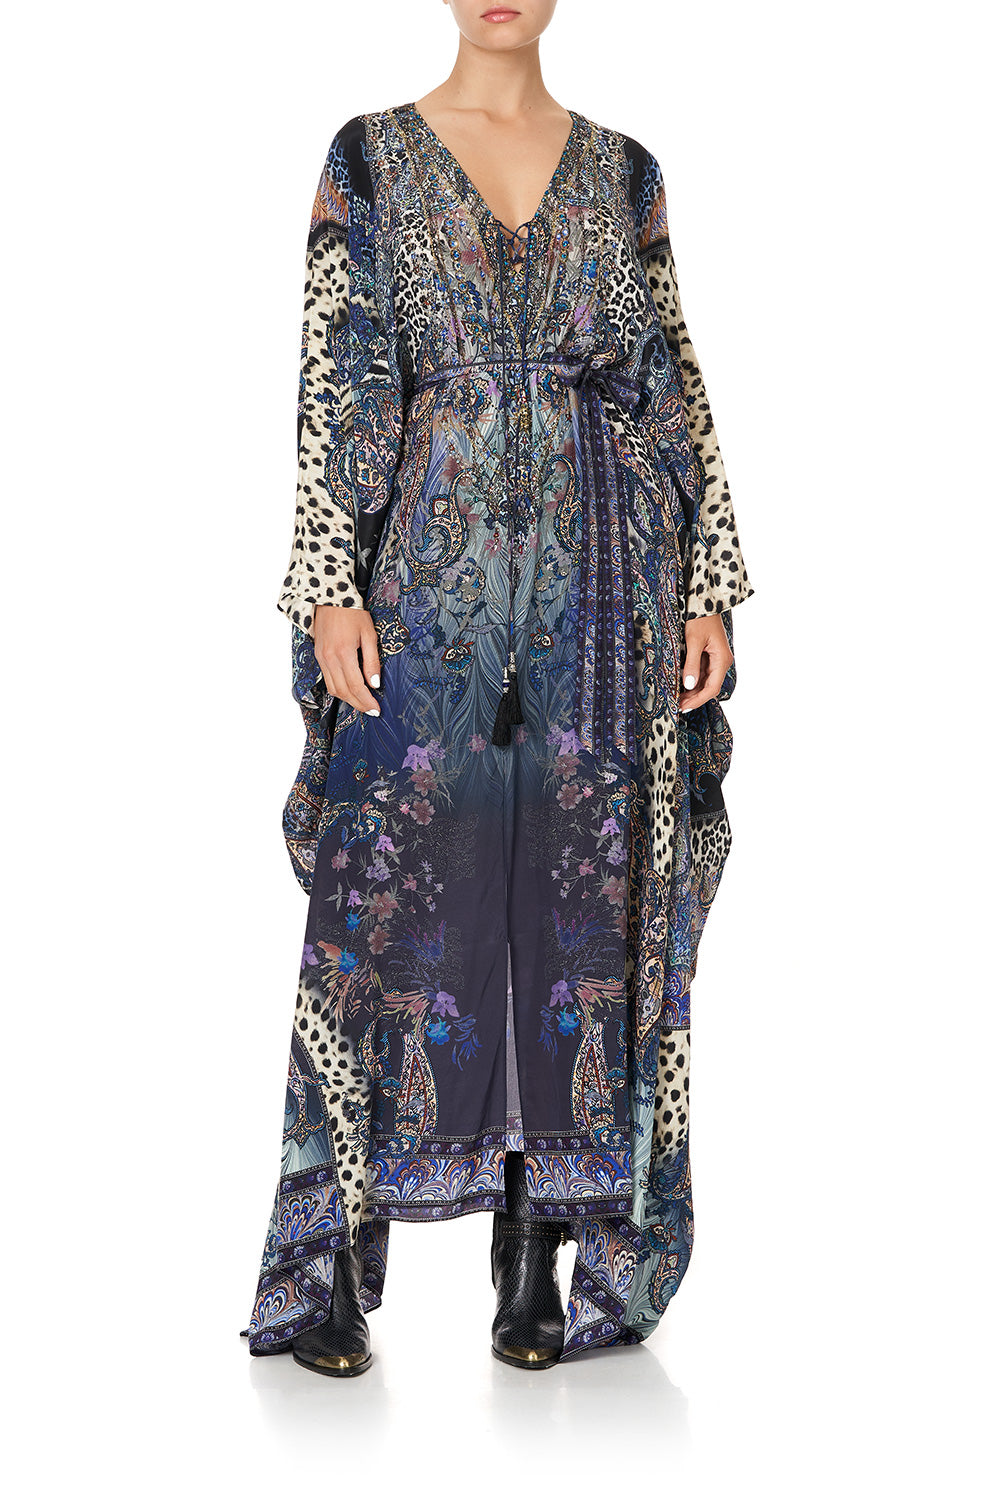 SPLIT HEM LACE UP KAFTAN FESTIVAL EXPRESS